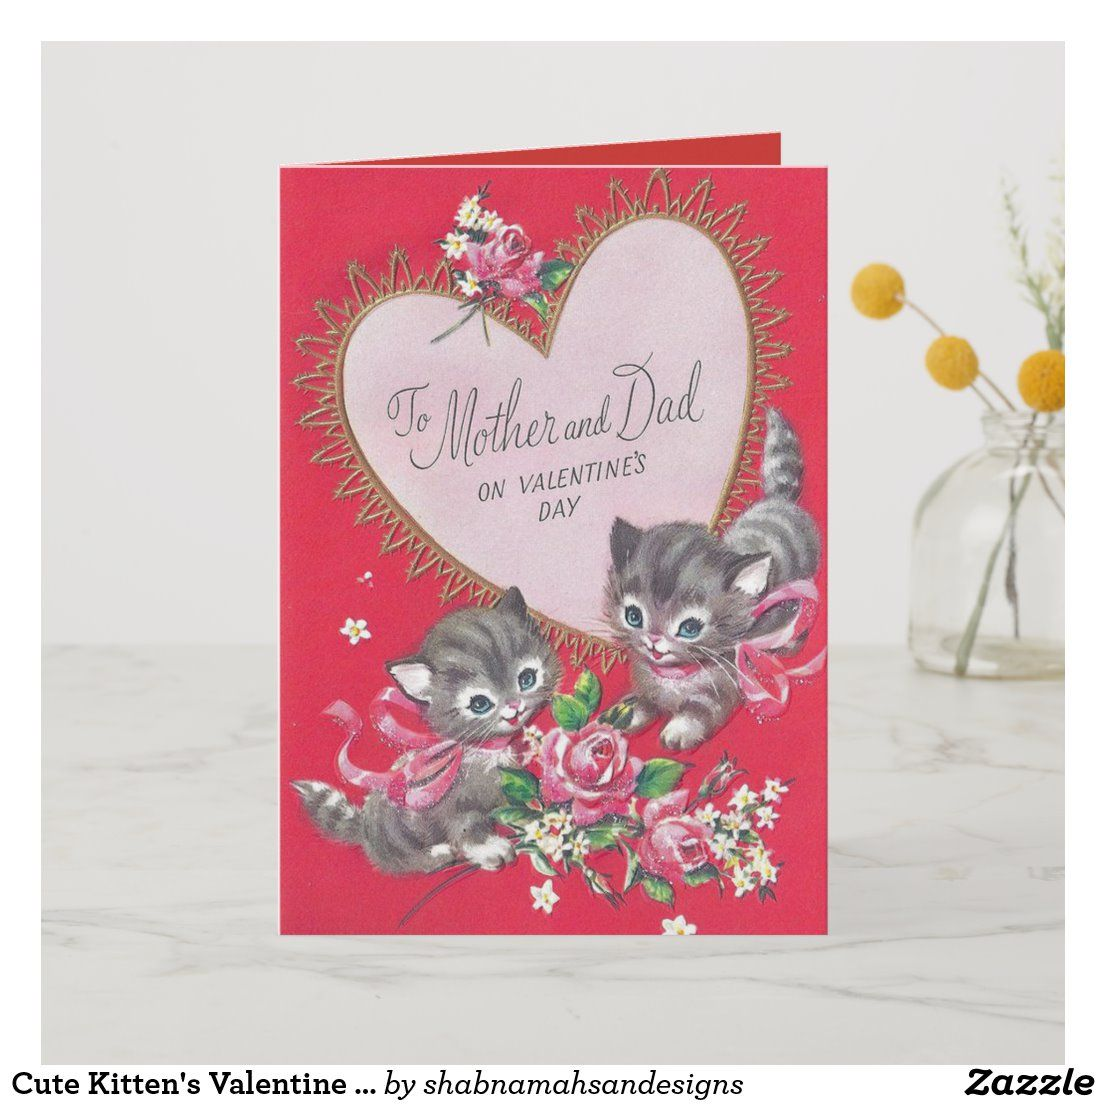 Cute Kitten S Valentine Day S Wish For Mom Dad Holiday Card Zazzle Com Dad Holiday Valentines Day Wishes Holiday Design Card